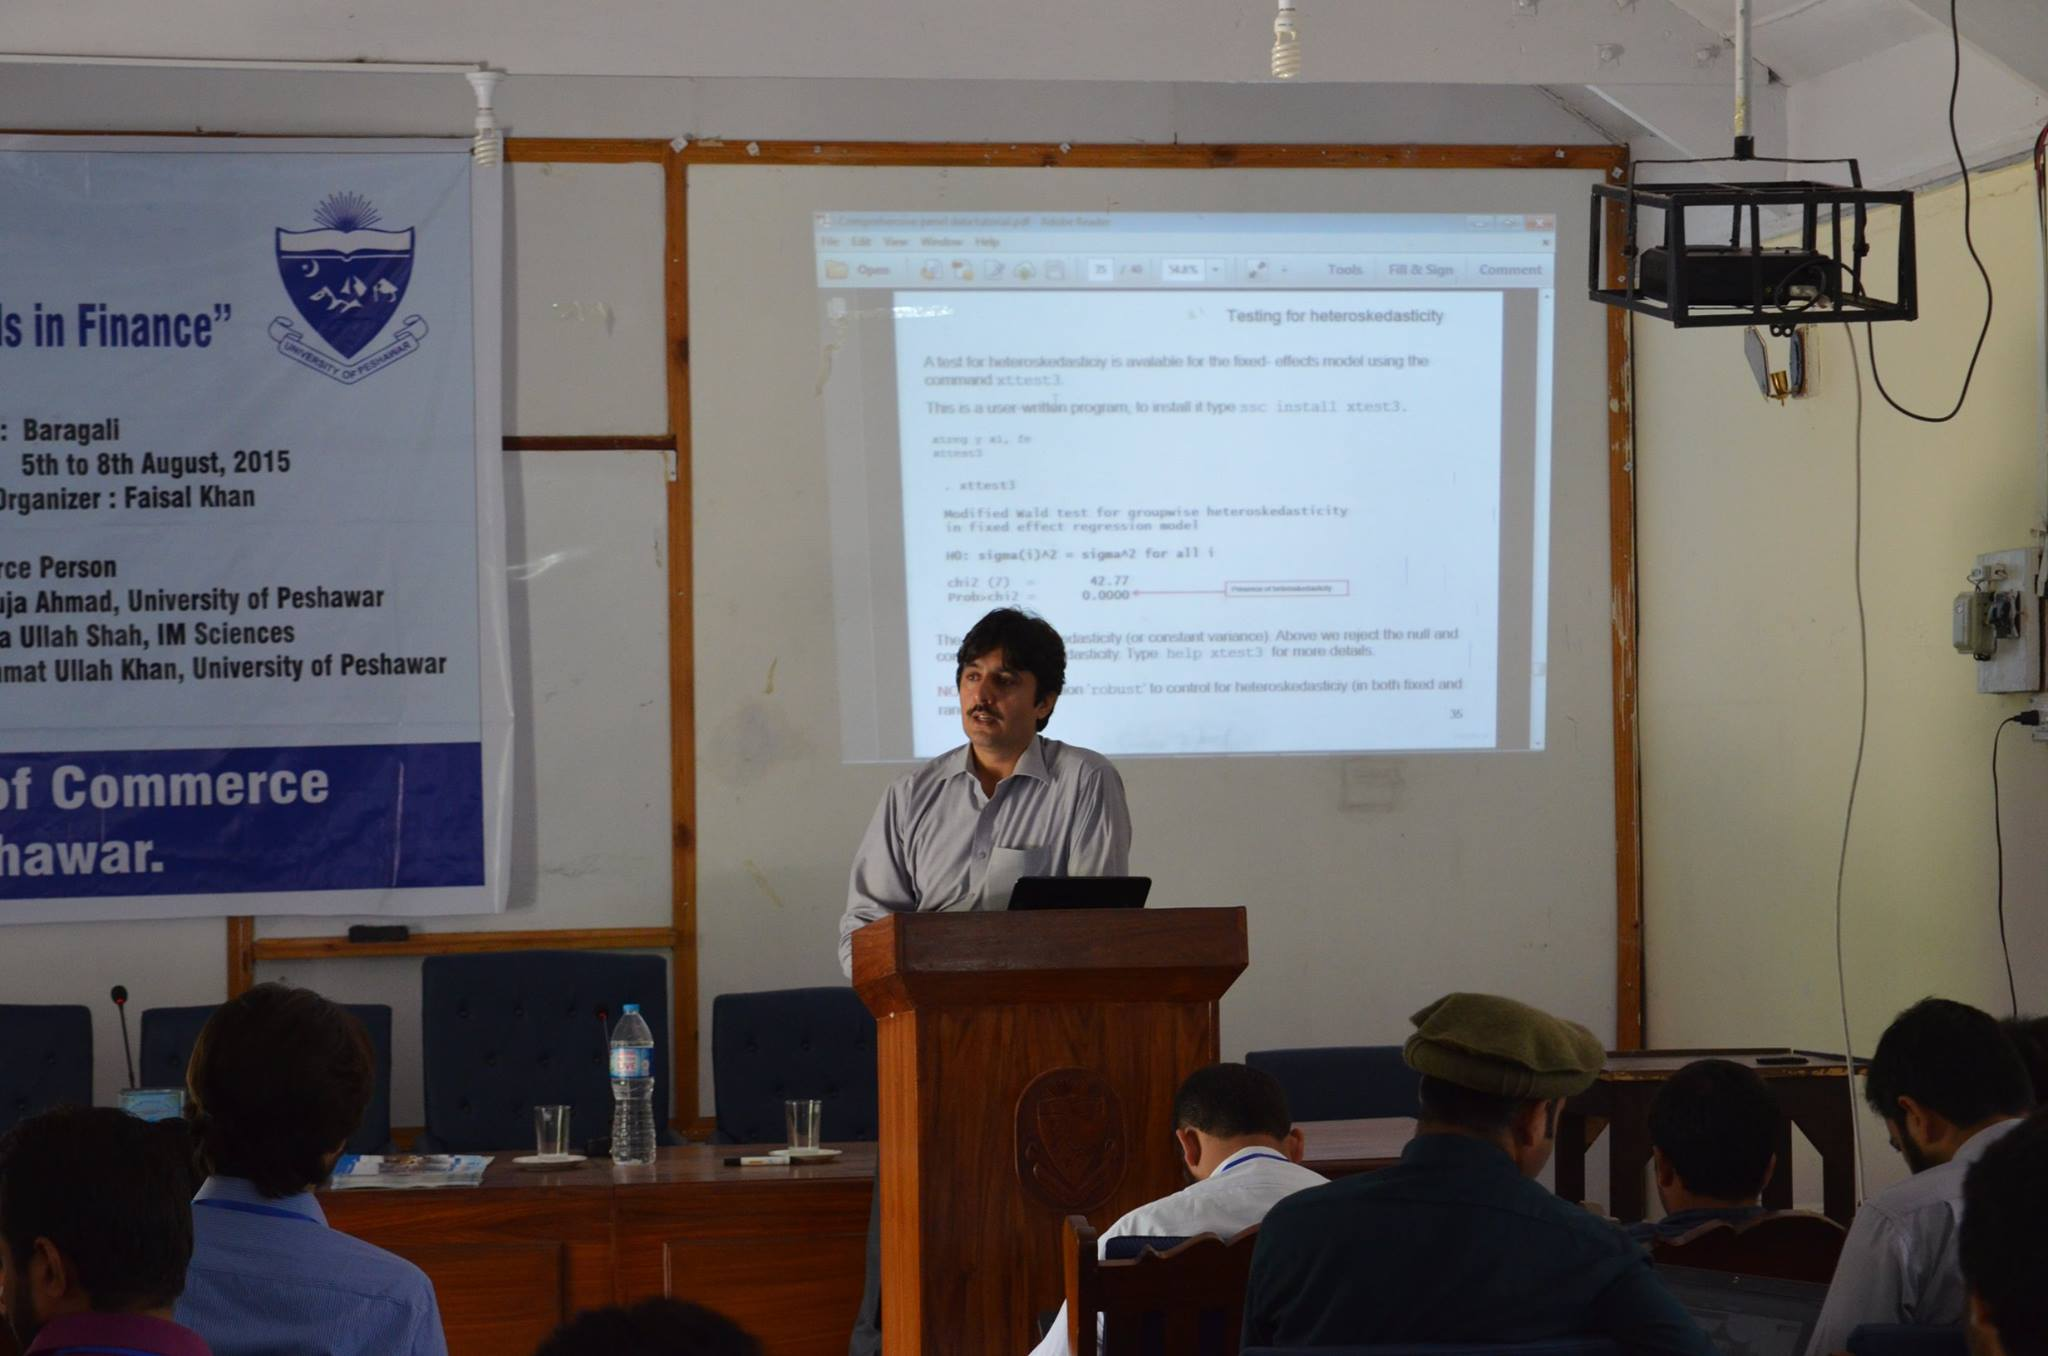 Dr. Atta Ullah Shah, during session